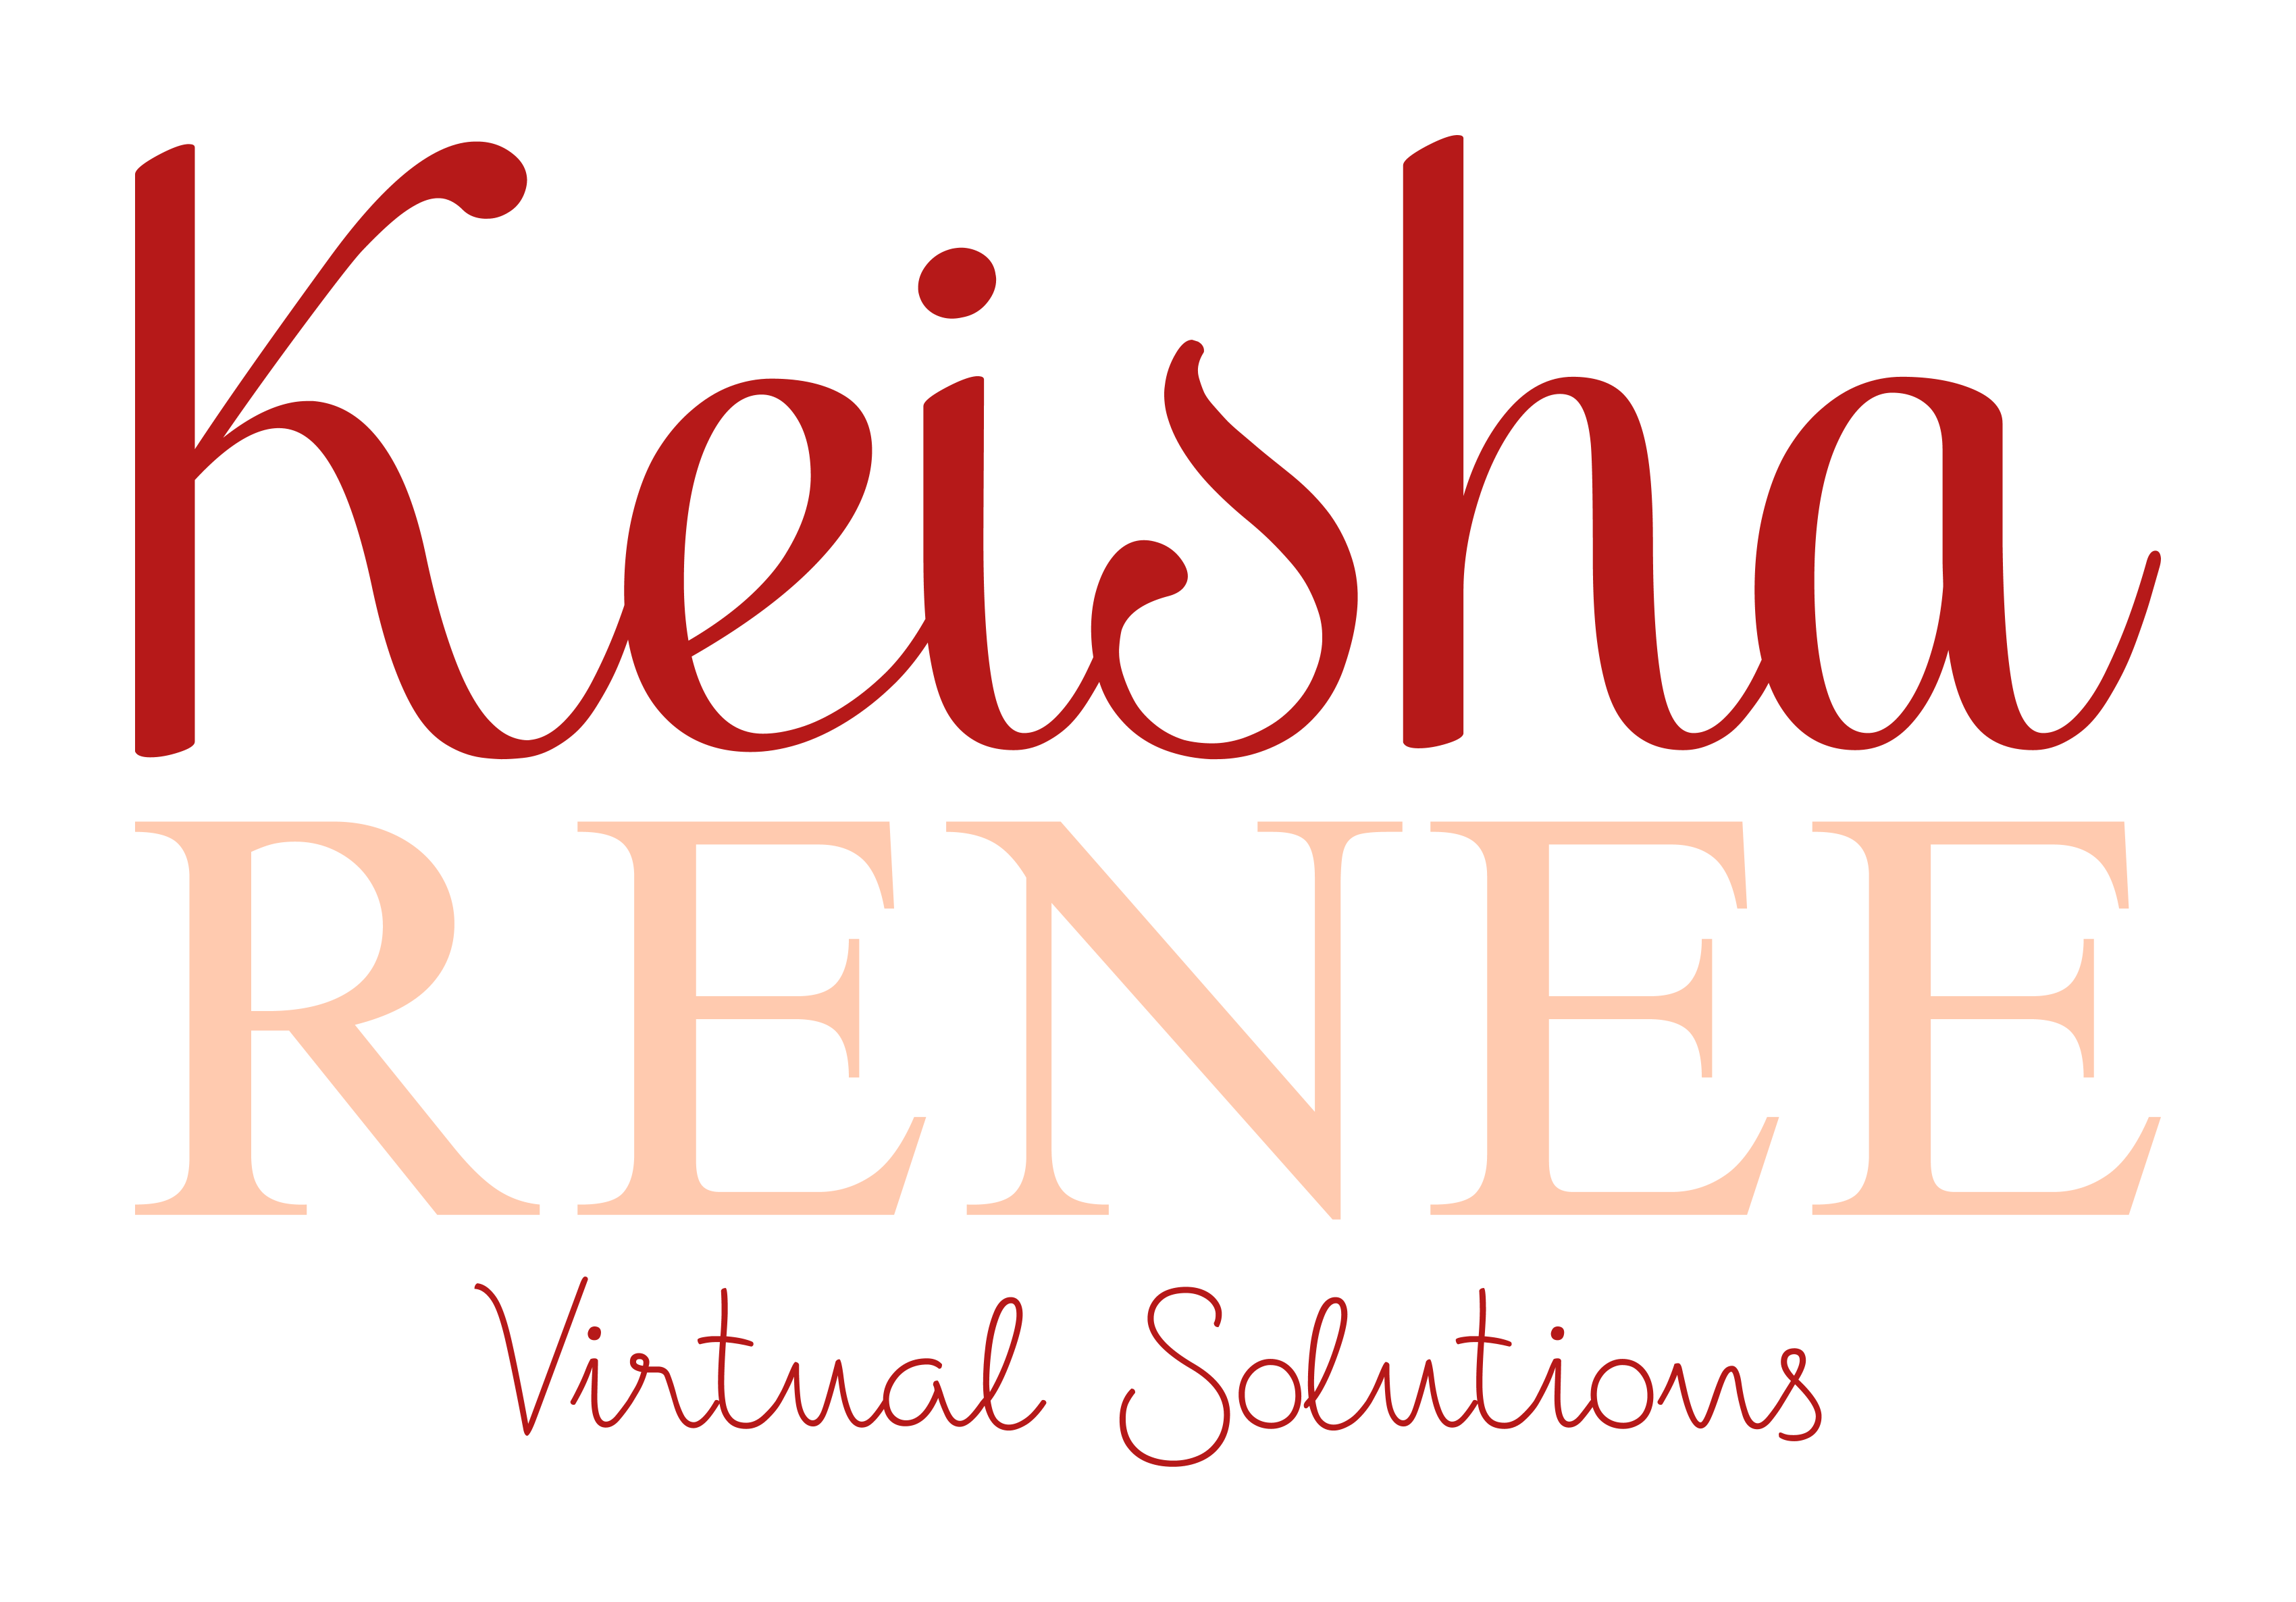 Keisha Renee Virtual Solutions